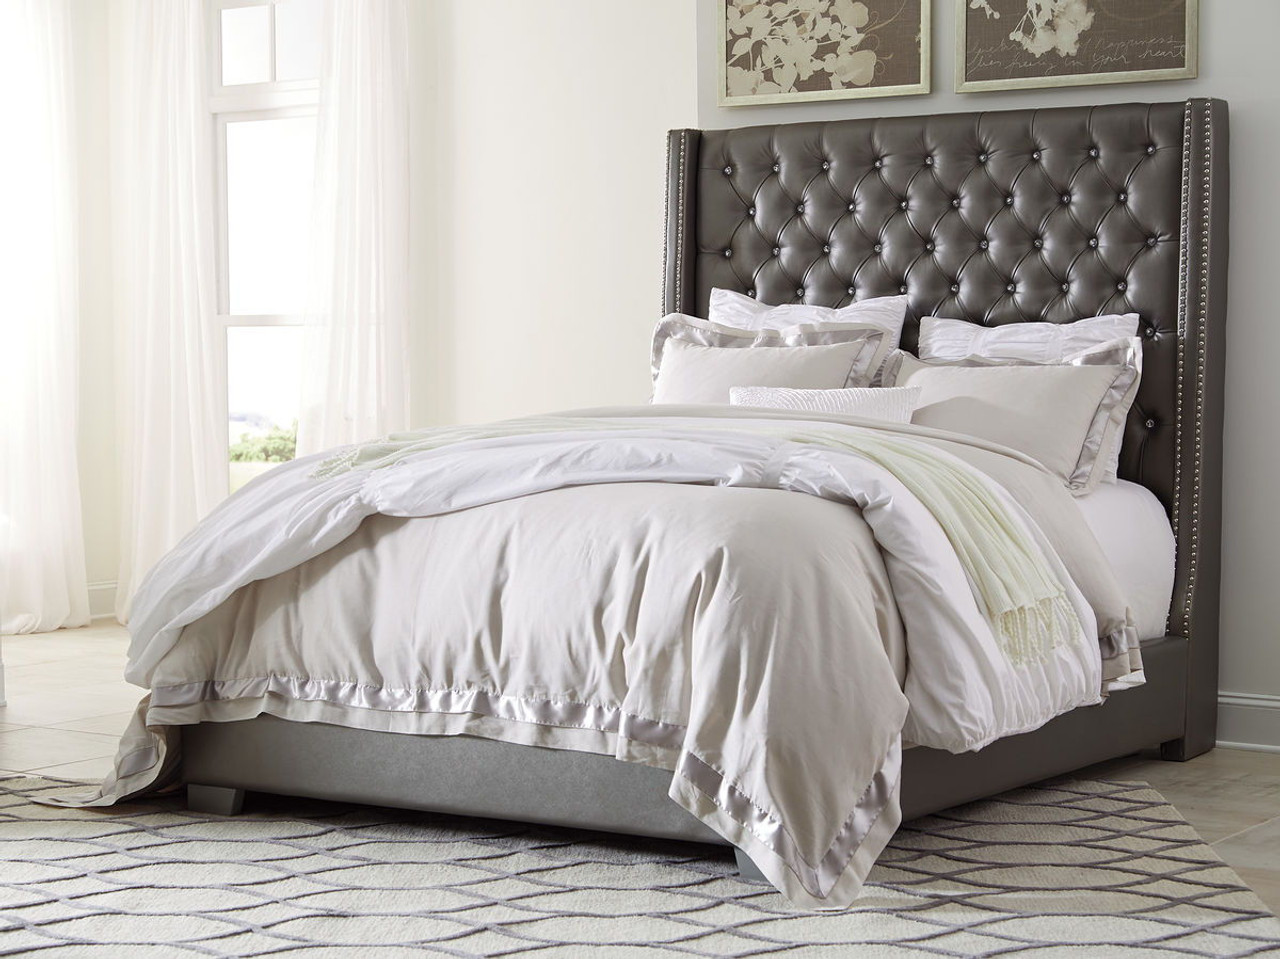 The Coralayne Gray Queen Upholstered Bed Available At Parlins Home Furnishings Serving Sturgis Mi